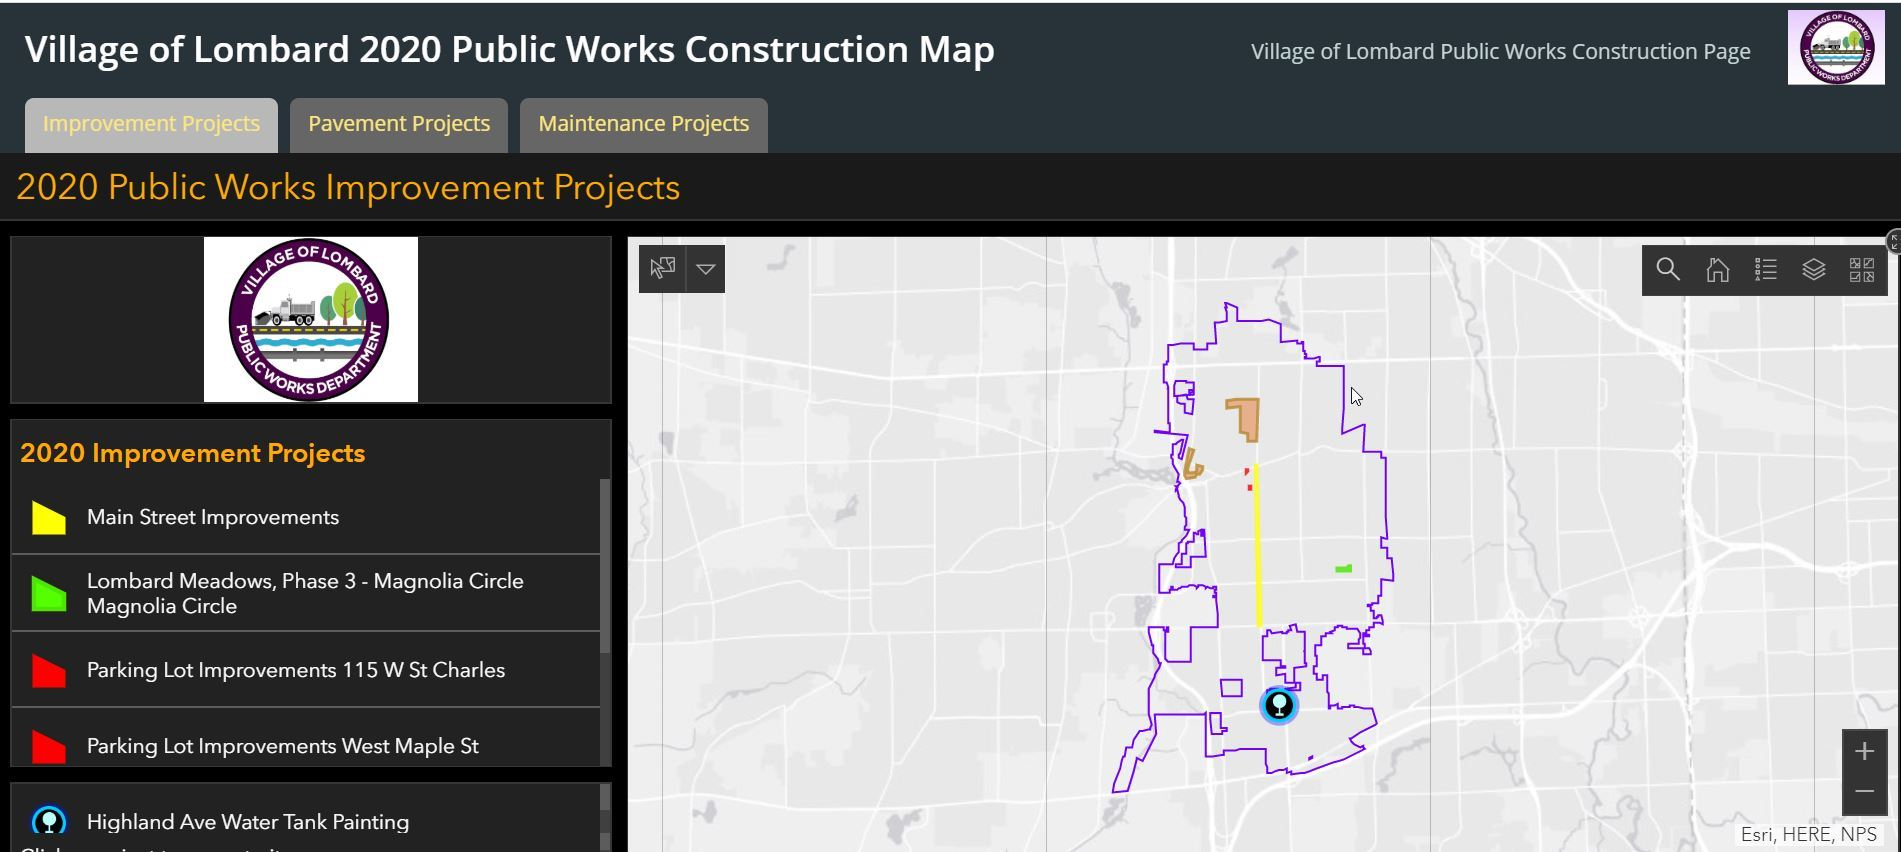 2020 Construction Map Image Opens in new window